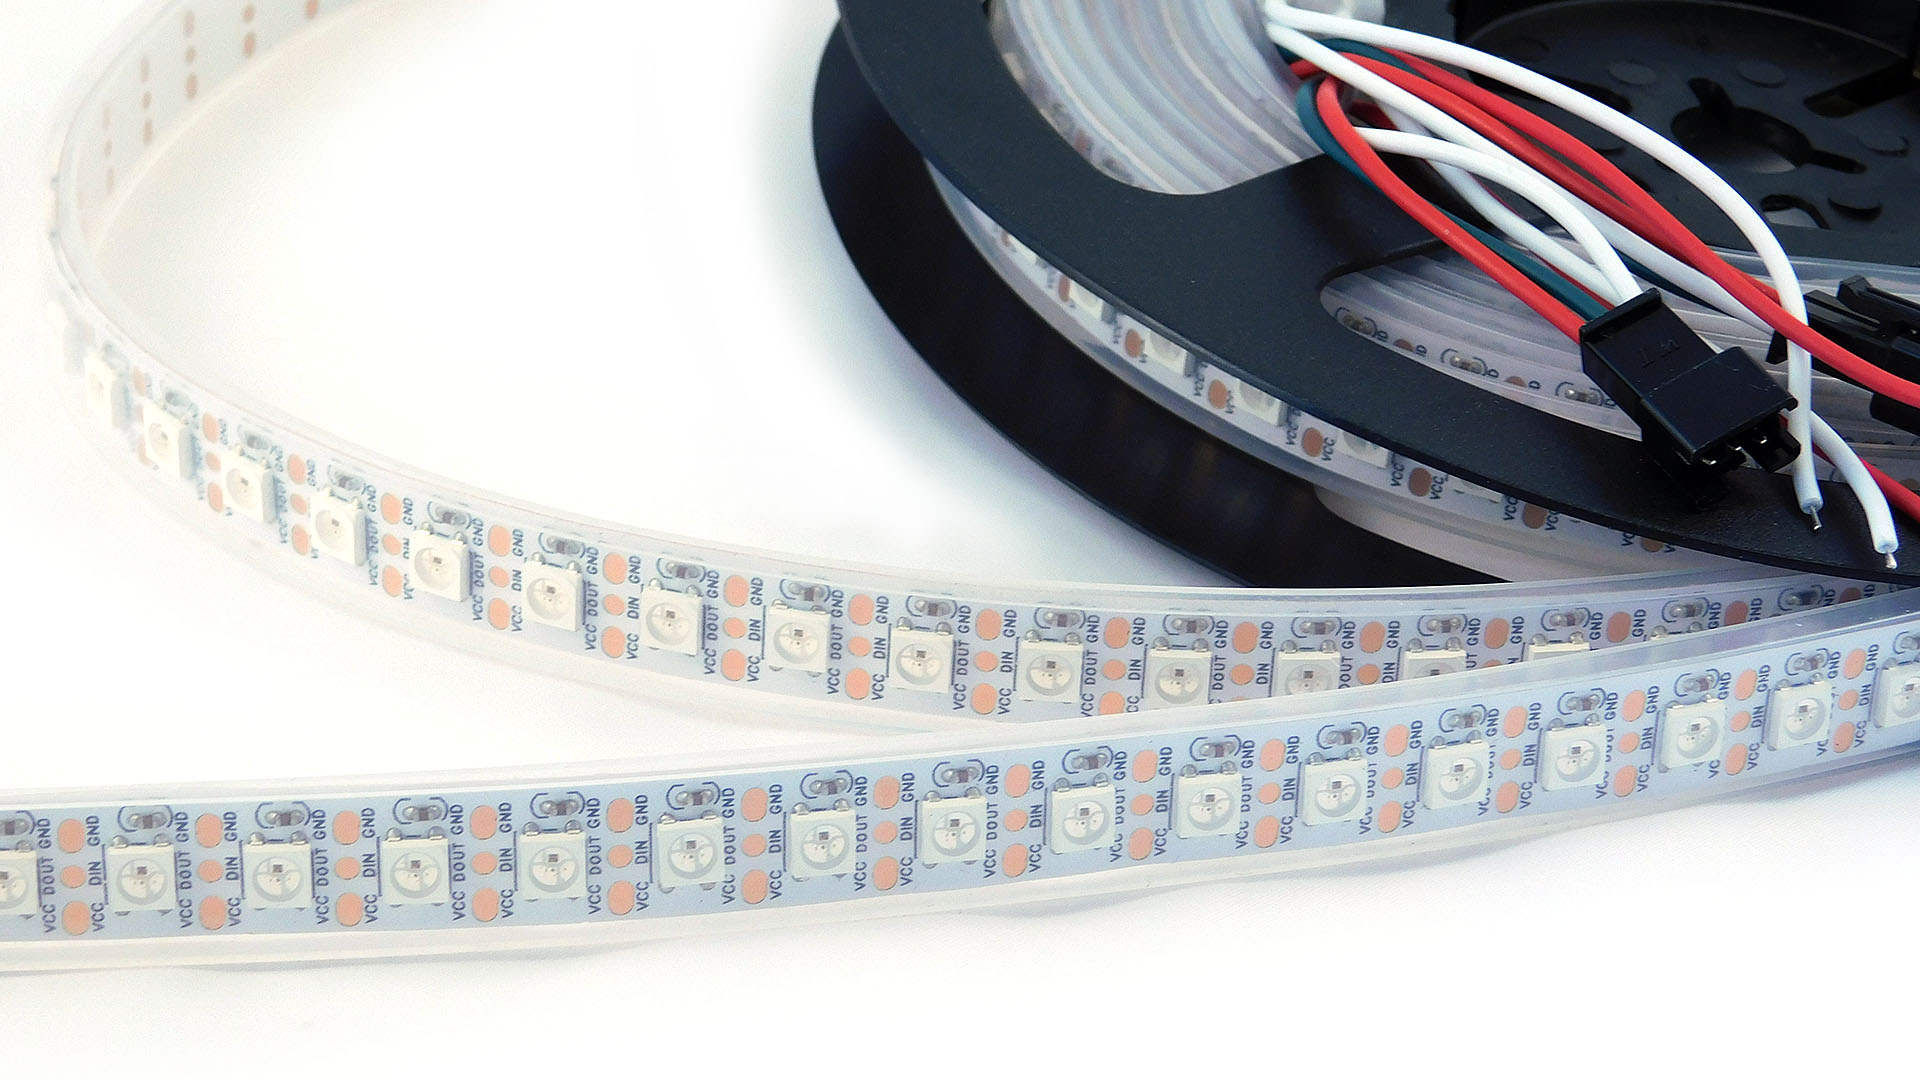 Led Strip Waterproof Nettigo Led Strip Rgb Ws2812b 5v White 96 M Ip67 Waterproof